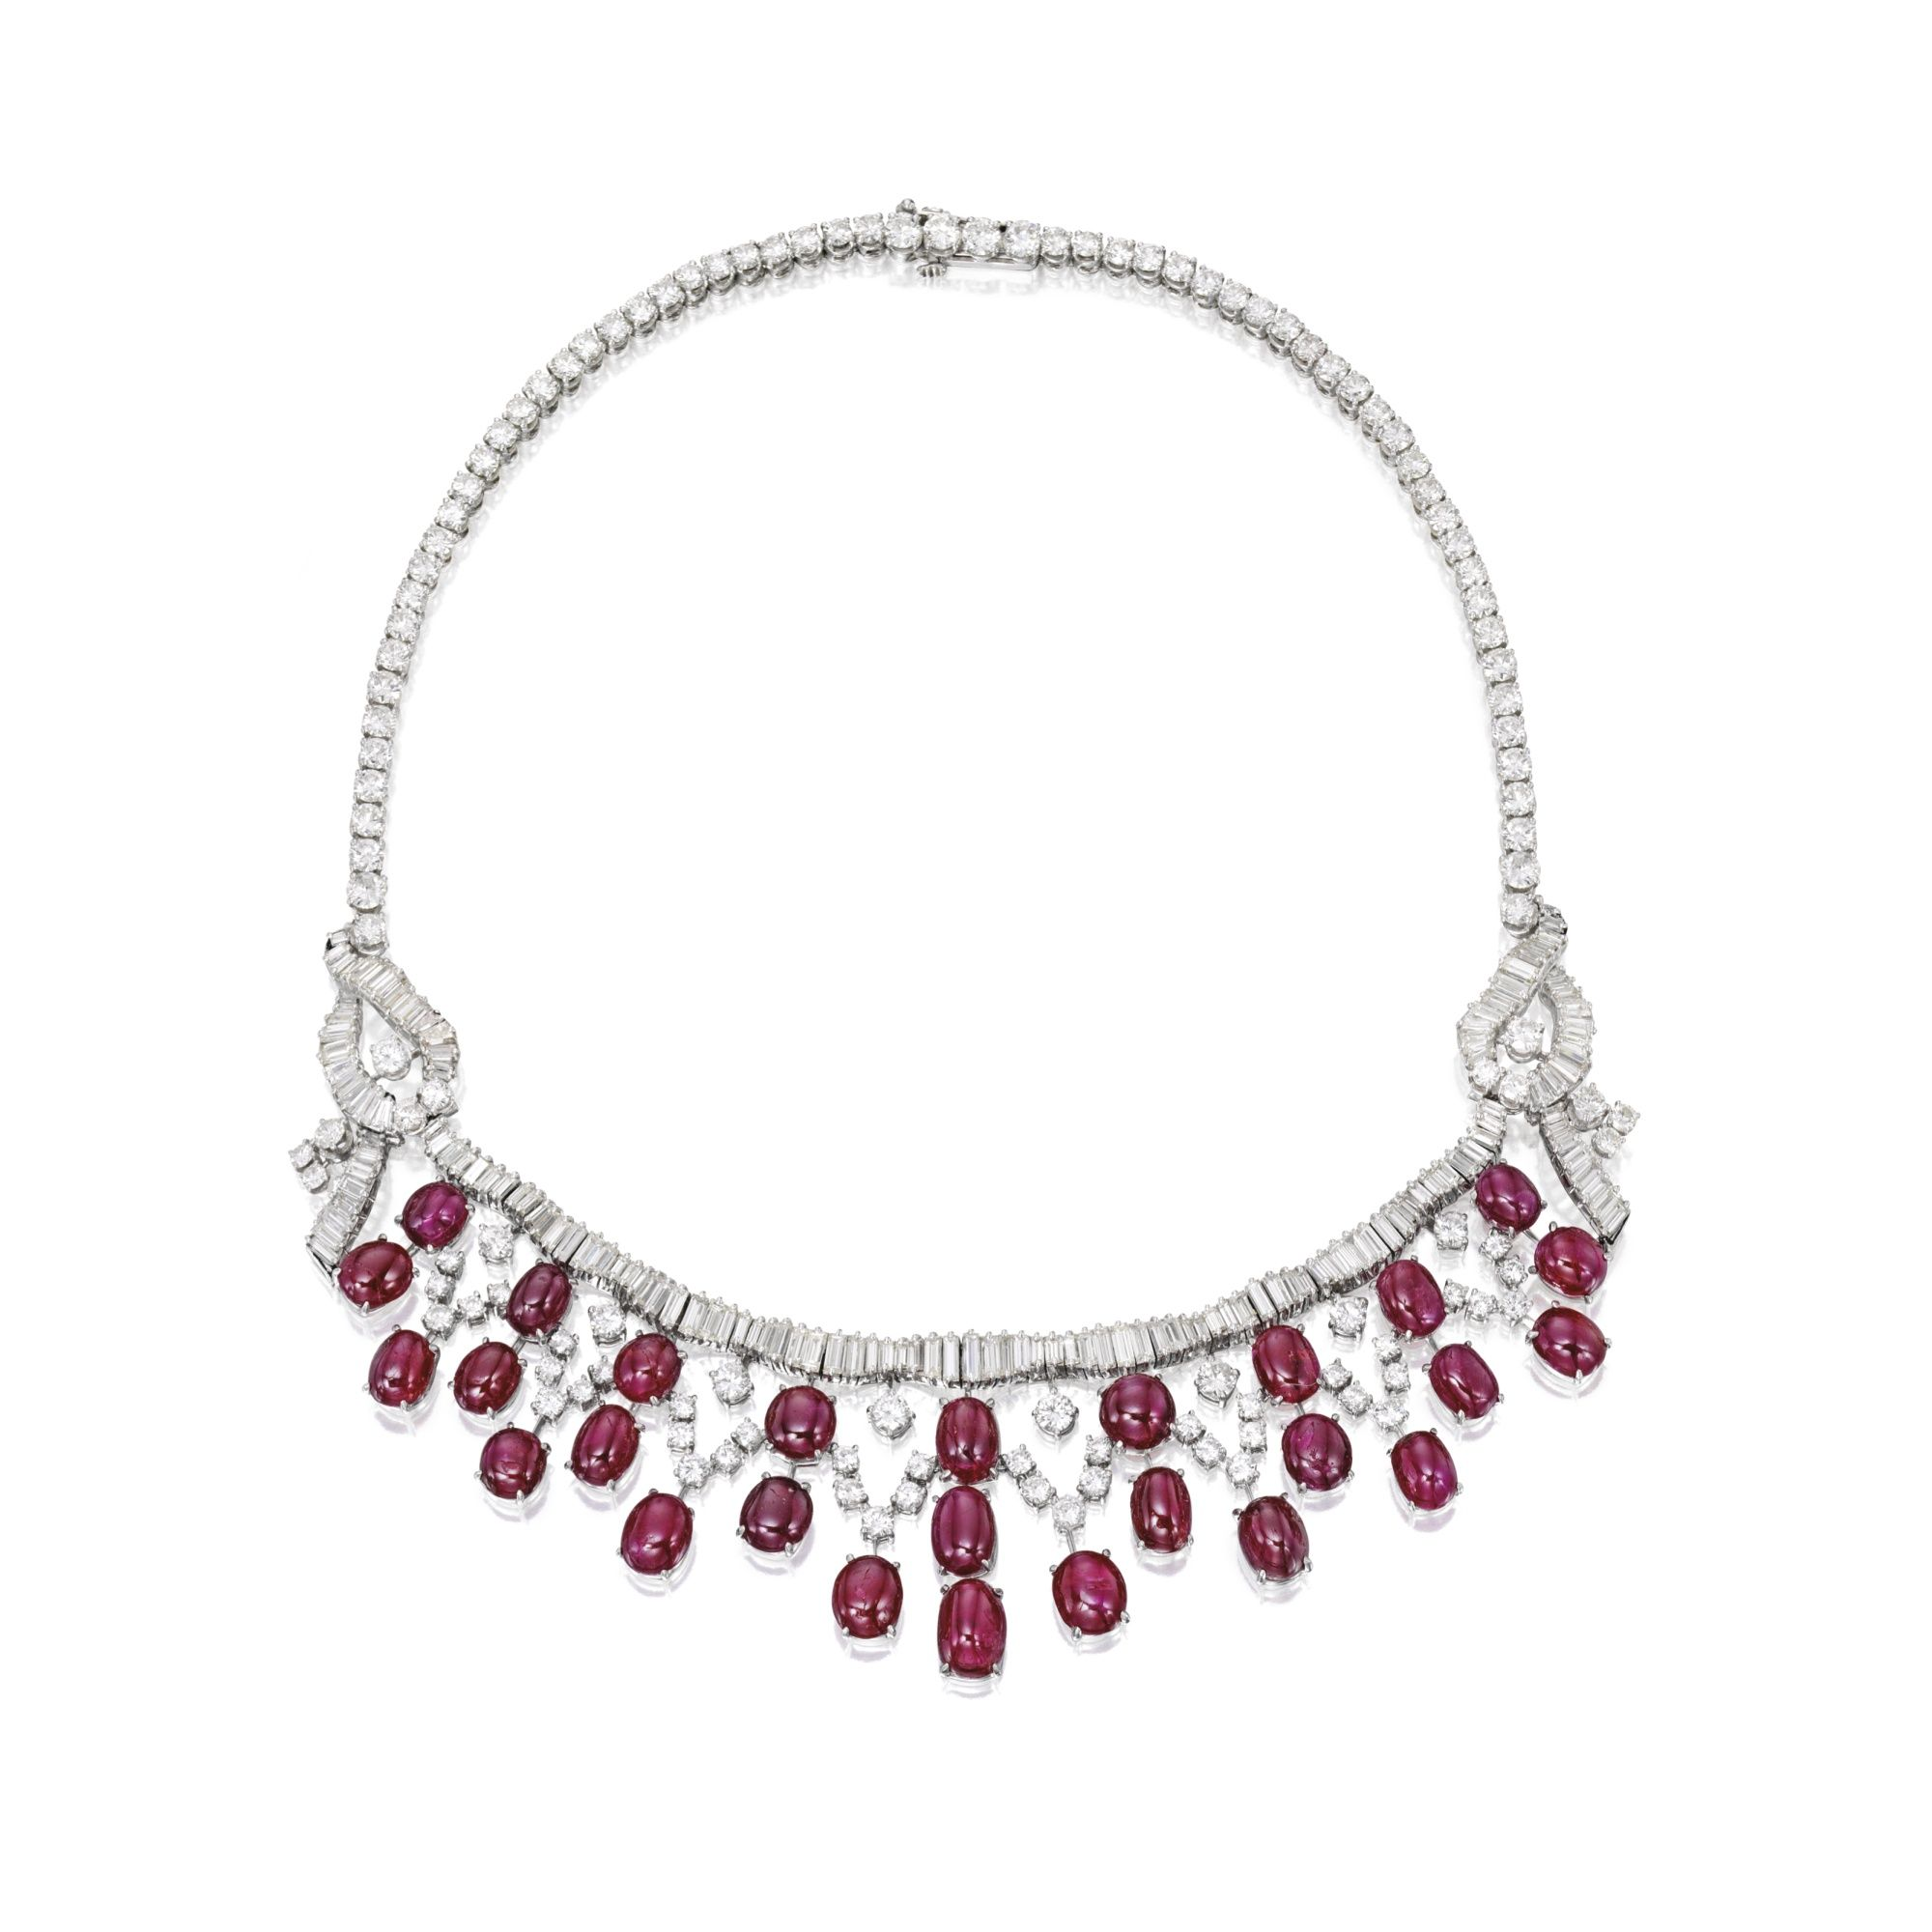 Platinum, Ruby and Diamond Necklace | Lot | Sotheby's